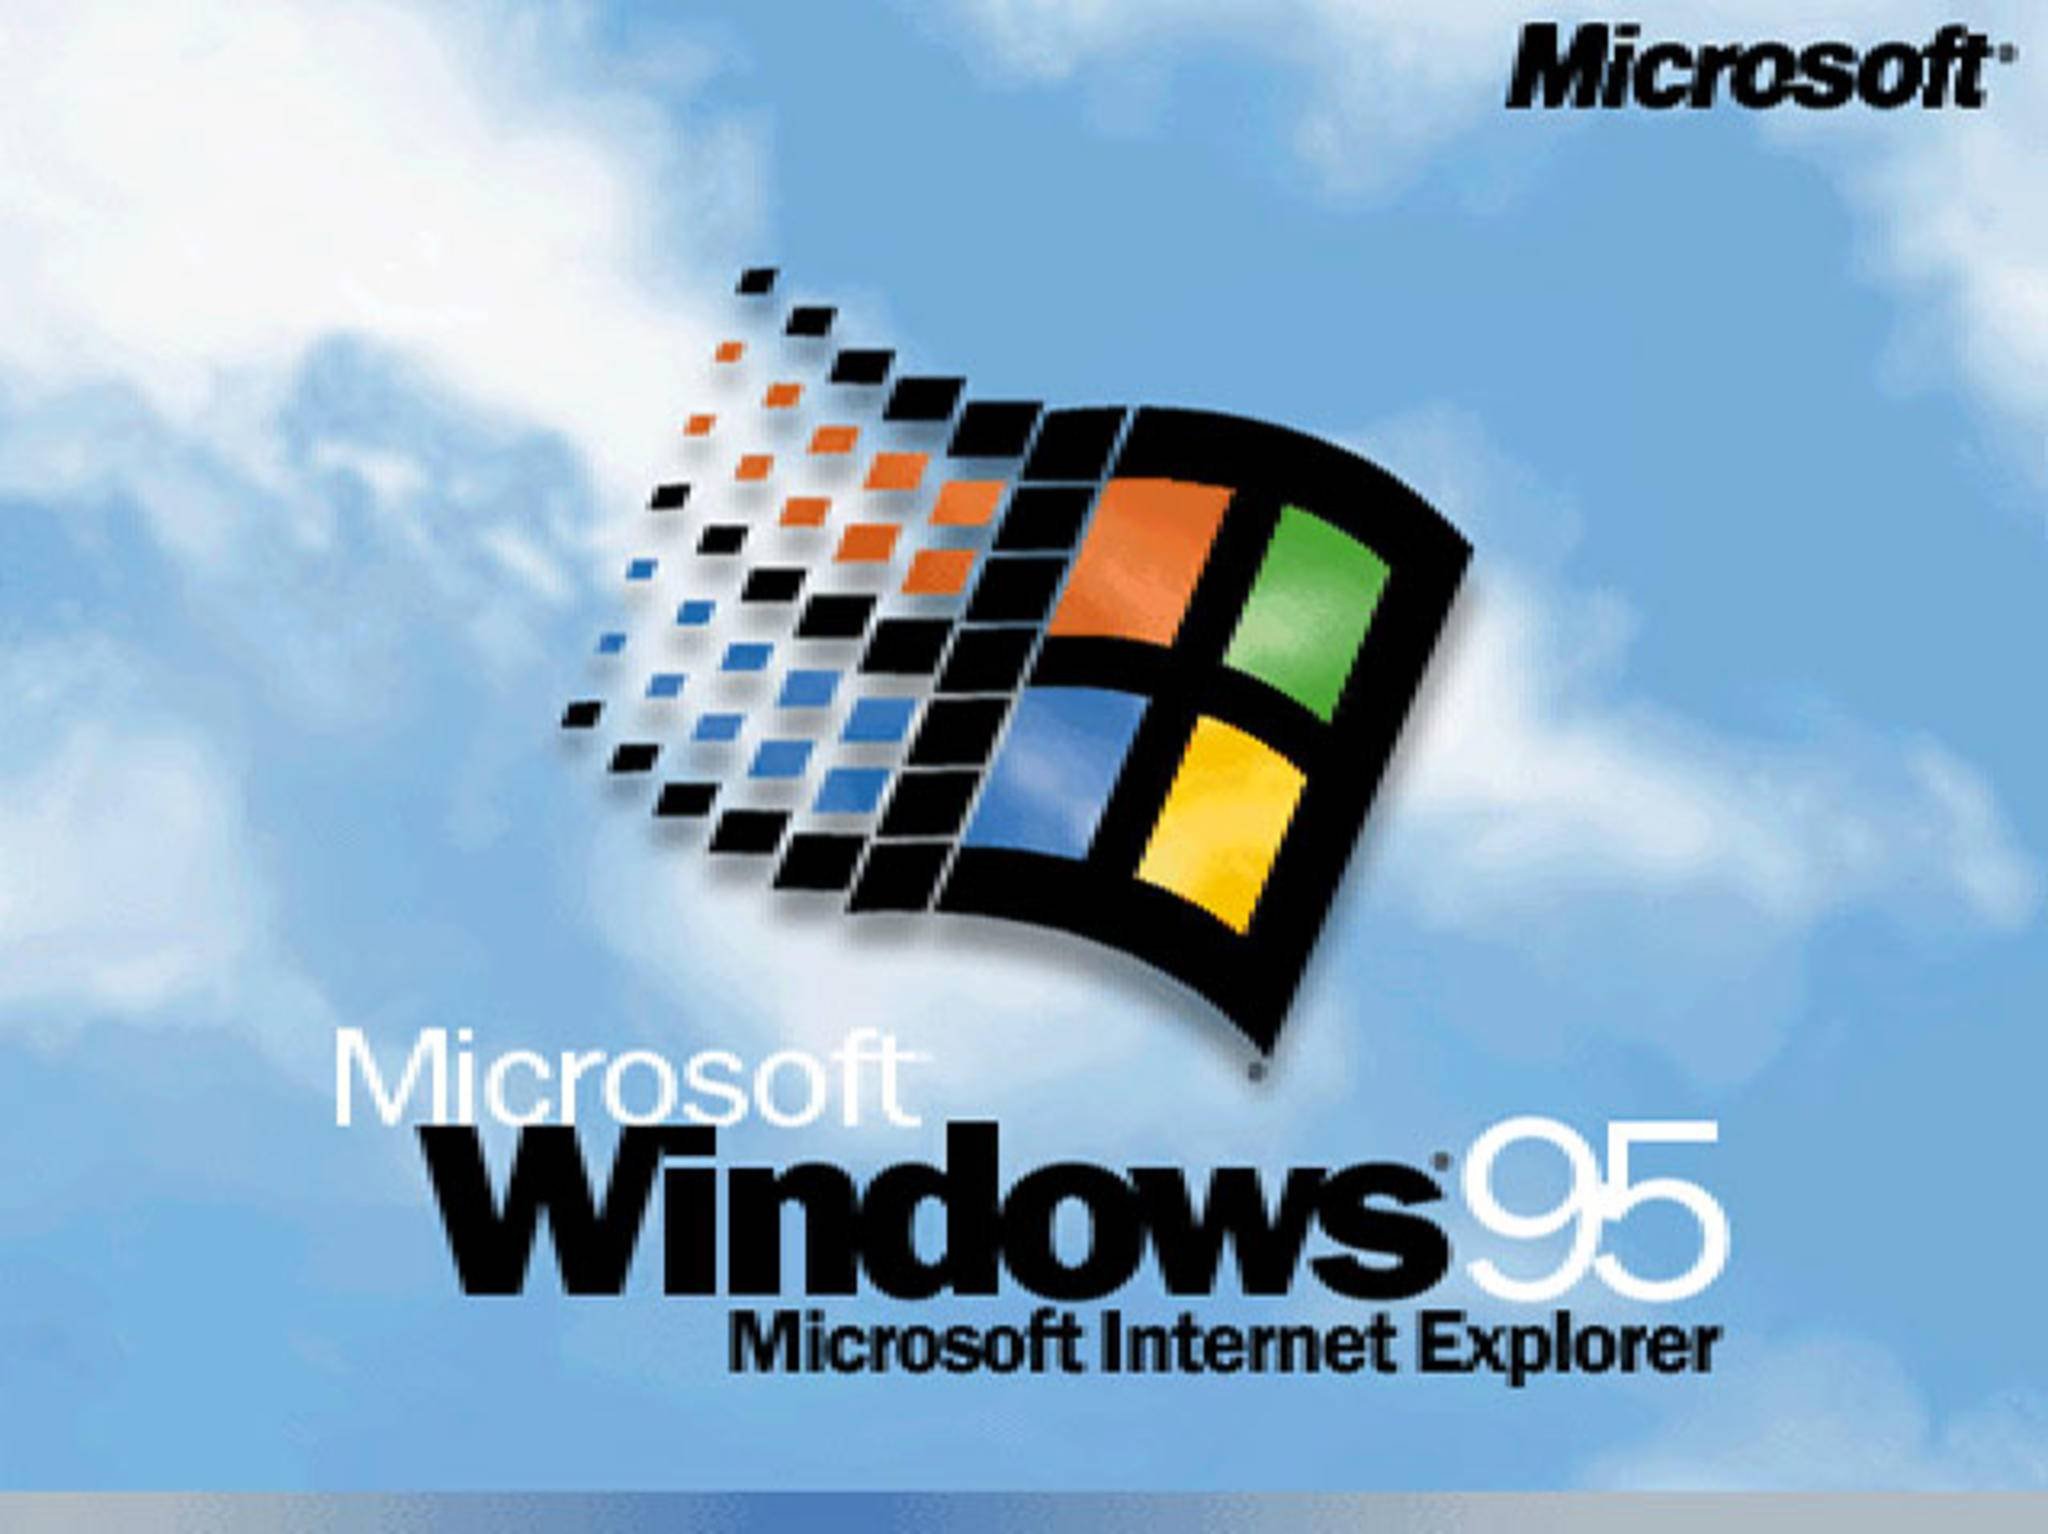 Windows 95 im Browser